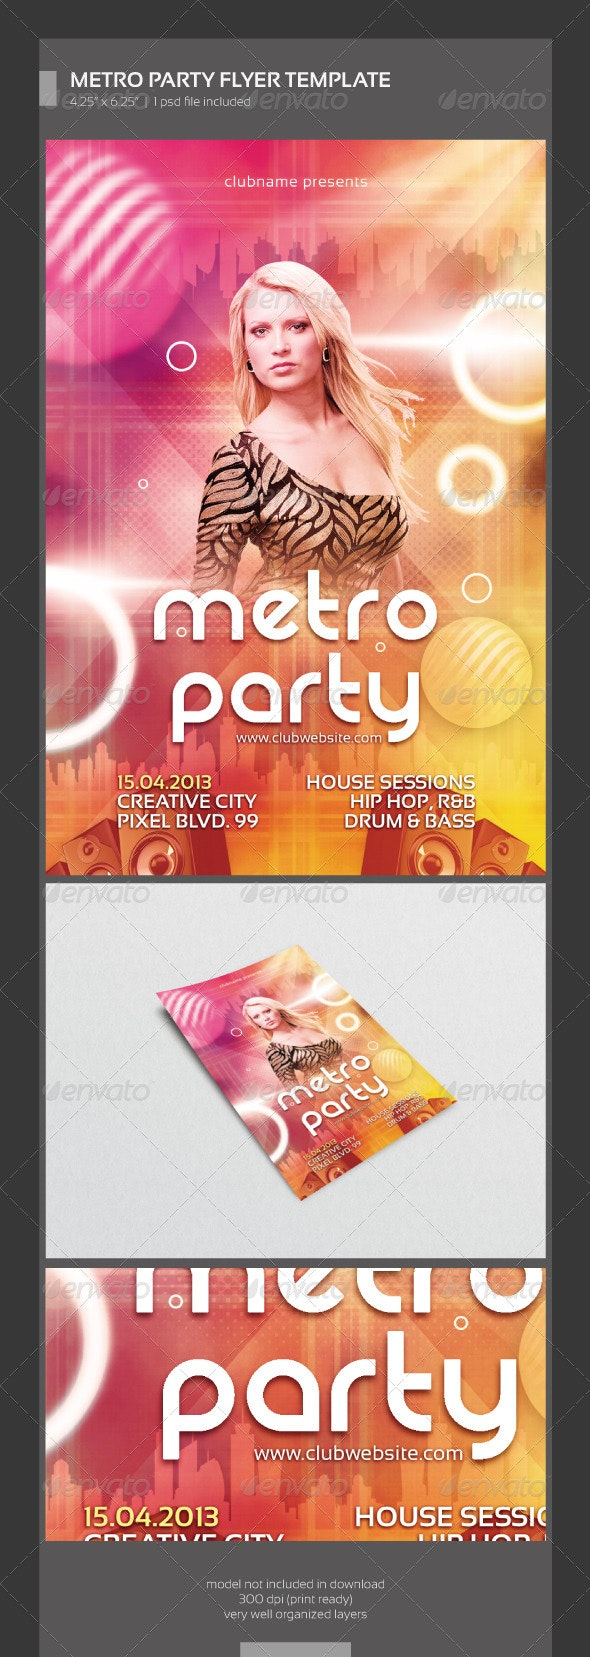 Metro Party Flyer Template - Clubs & Parties Events